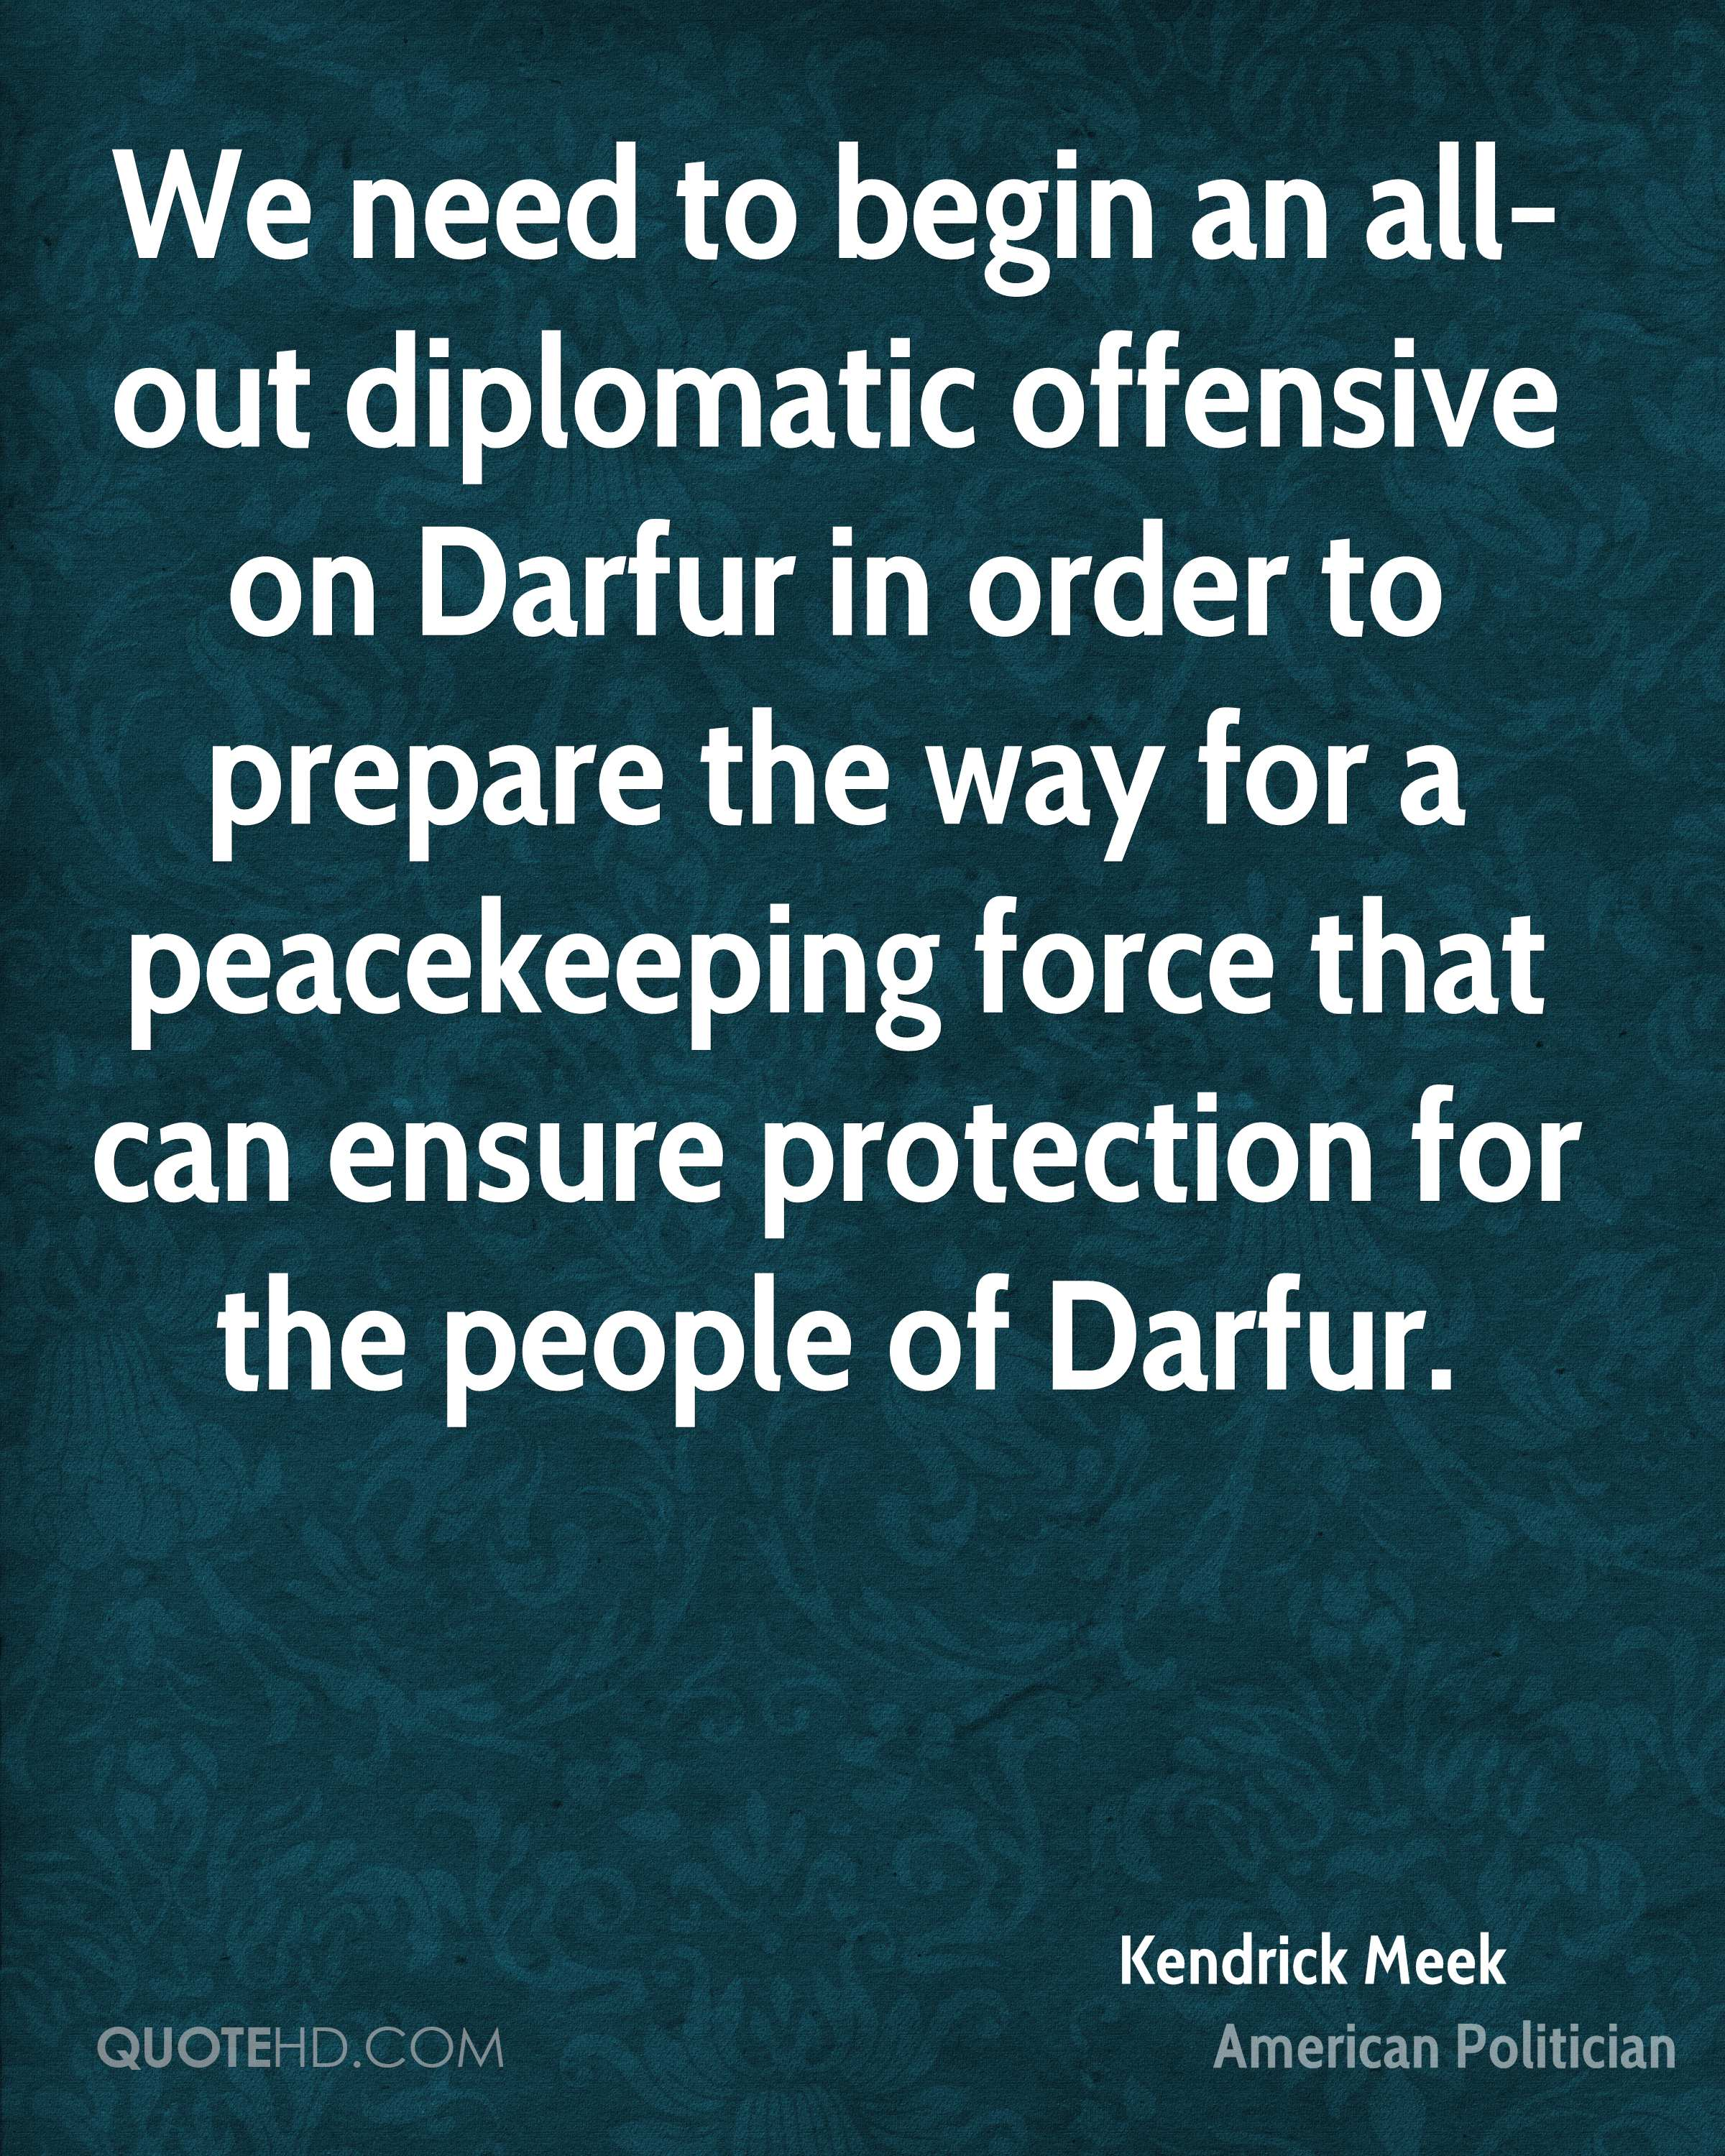 We need to begin an all-out diplomatic offensive on Darfur in order to prepare the way for a peacekeeping force that can ensure protection for the people of Darfur.